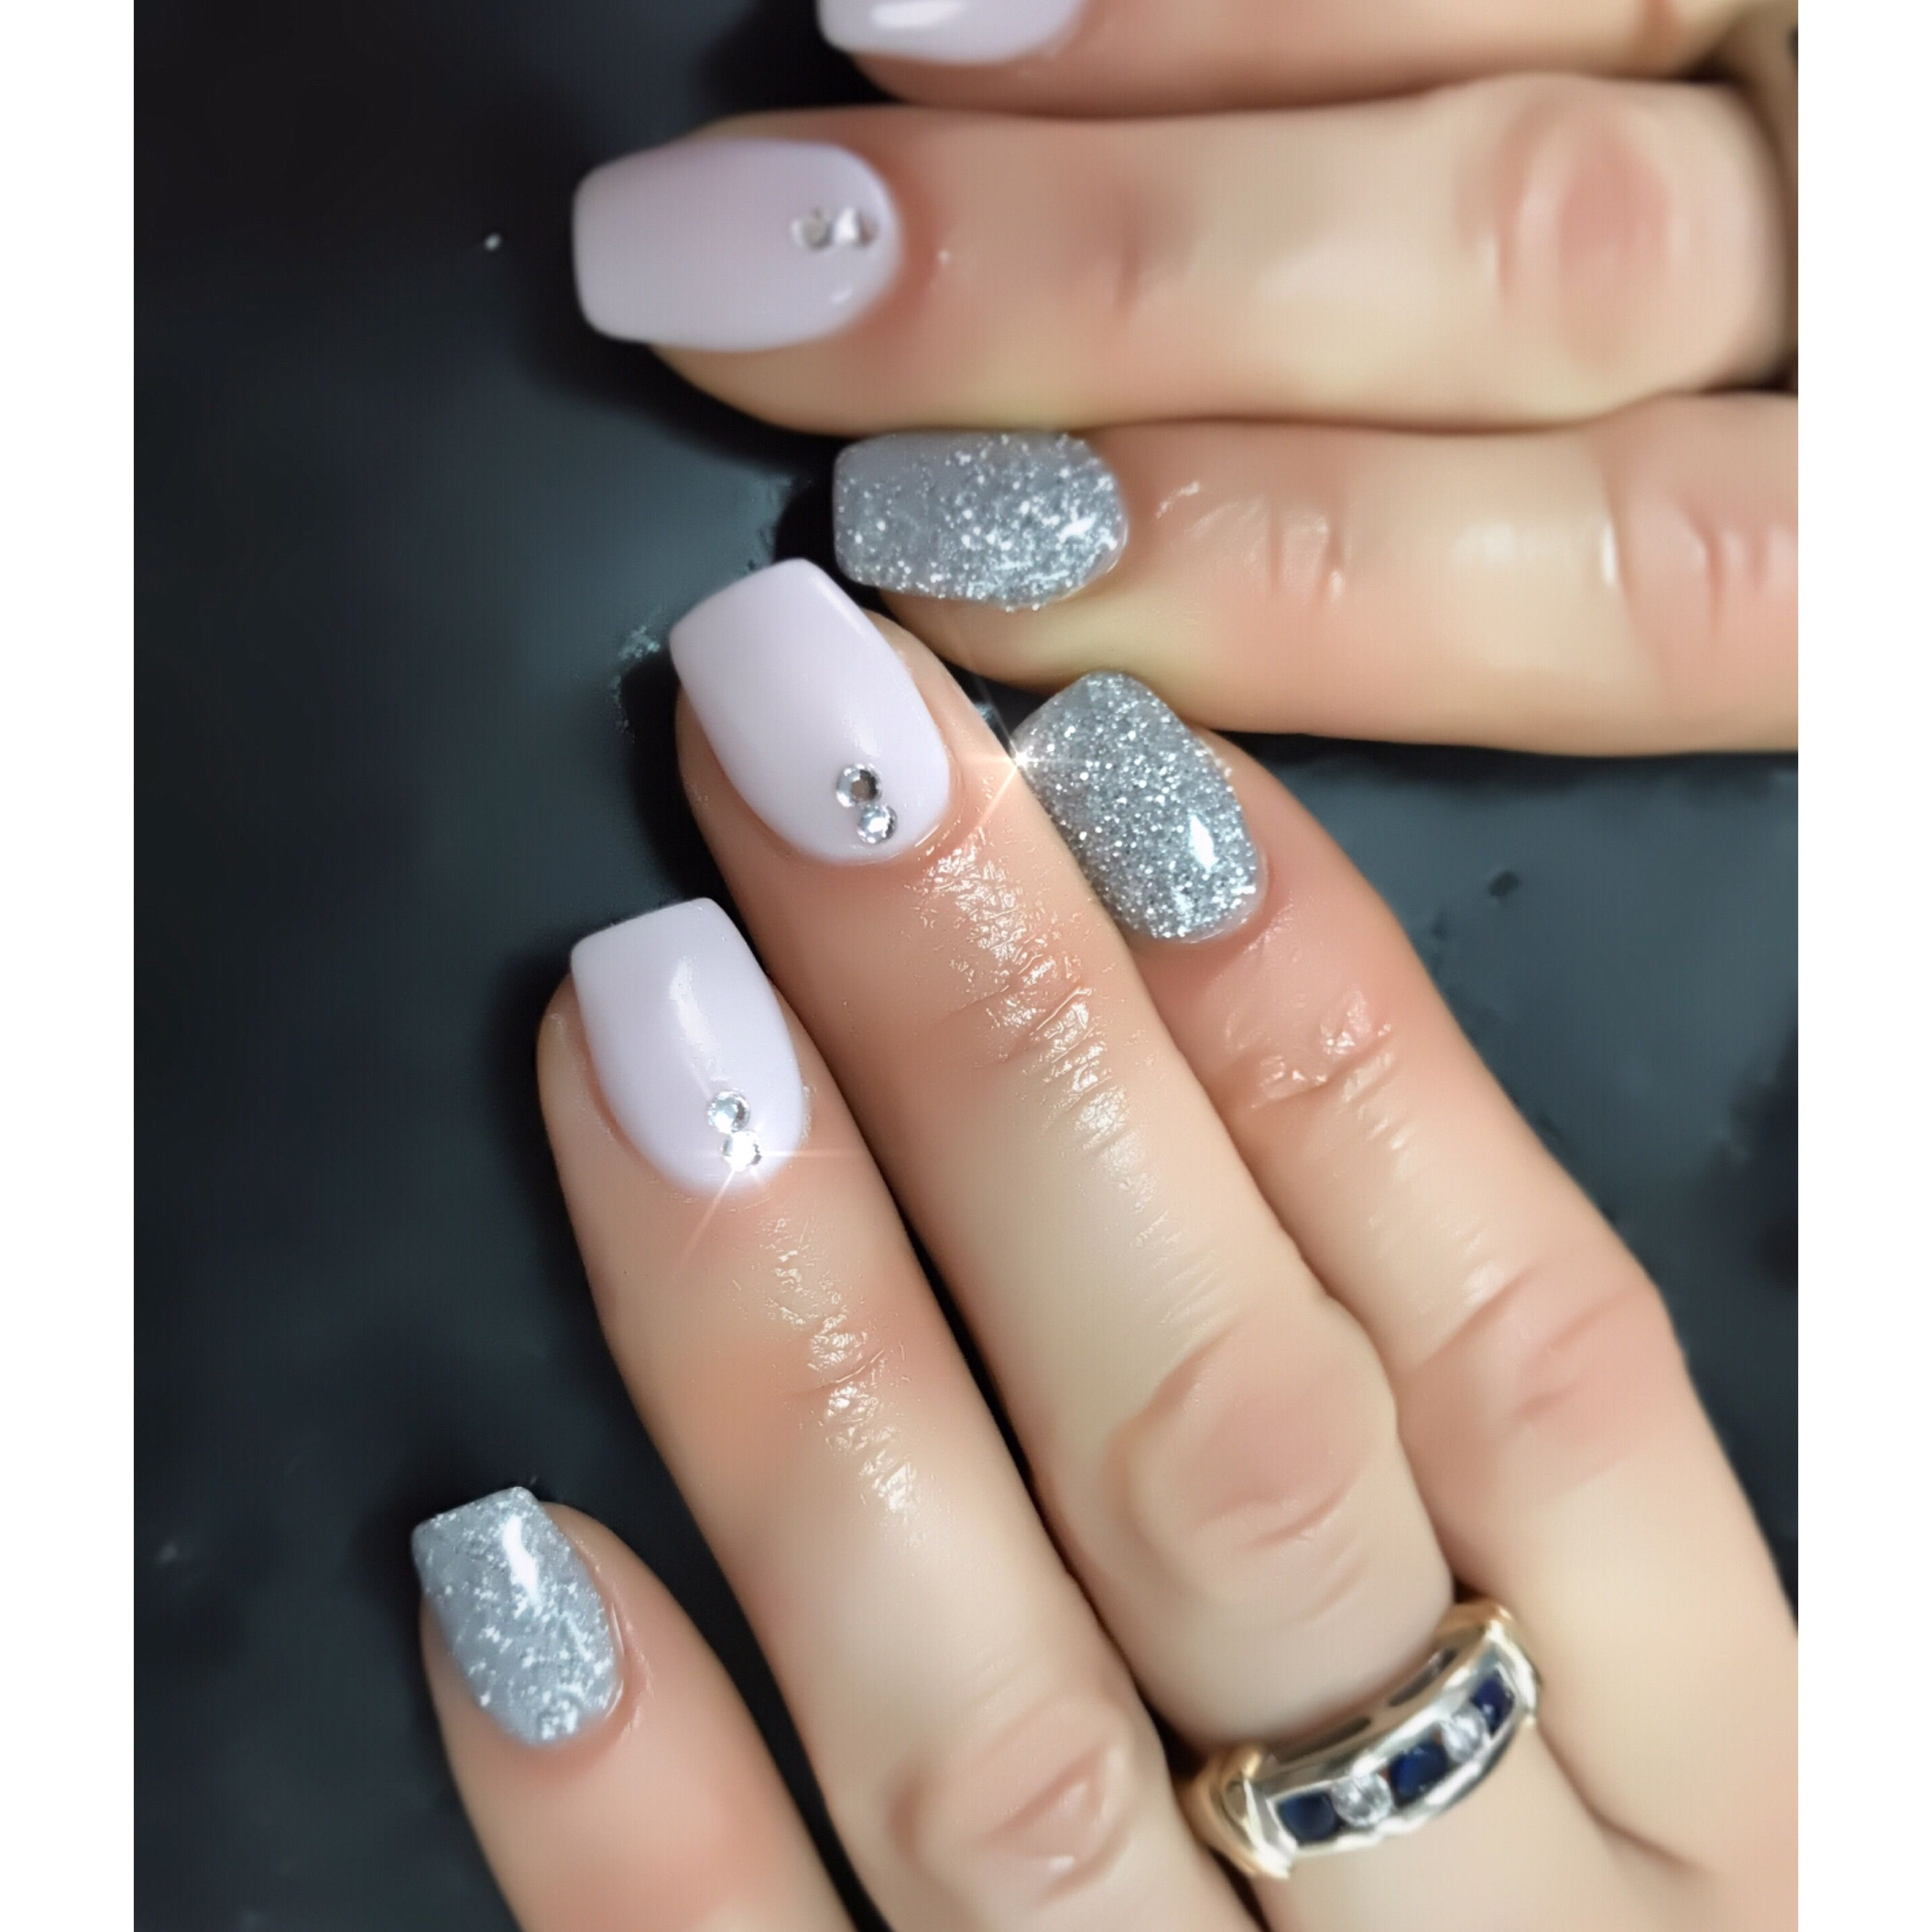 Fancy Anc Wedding Nails Conceptwedding Nailsombreamazing